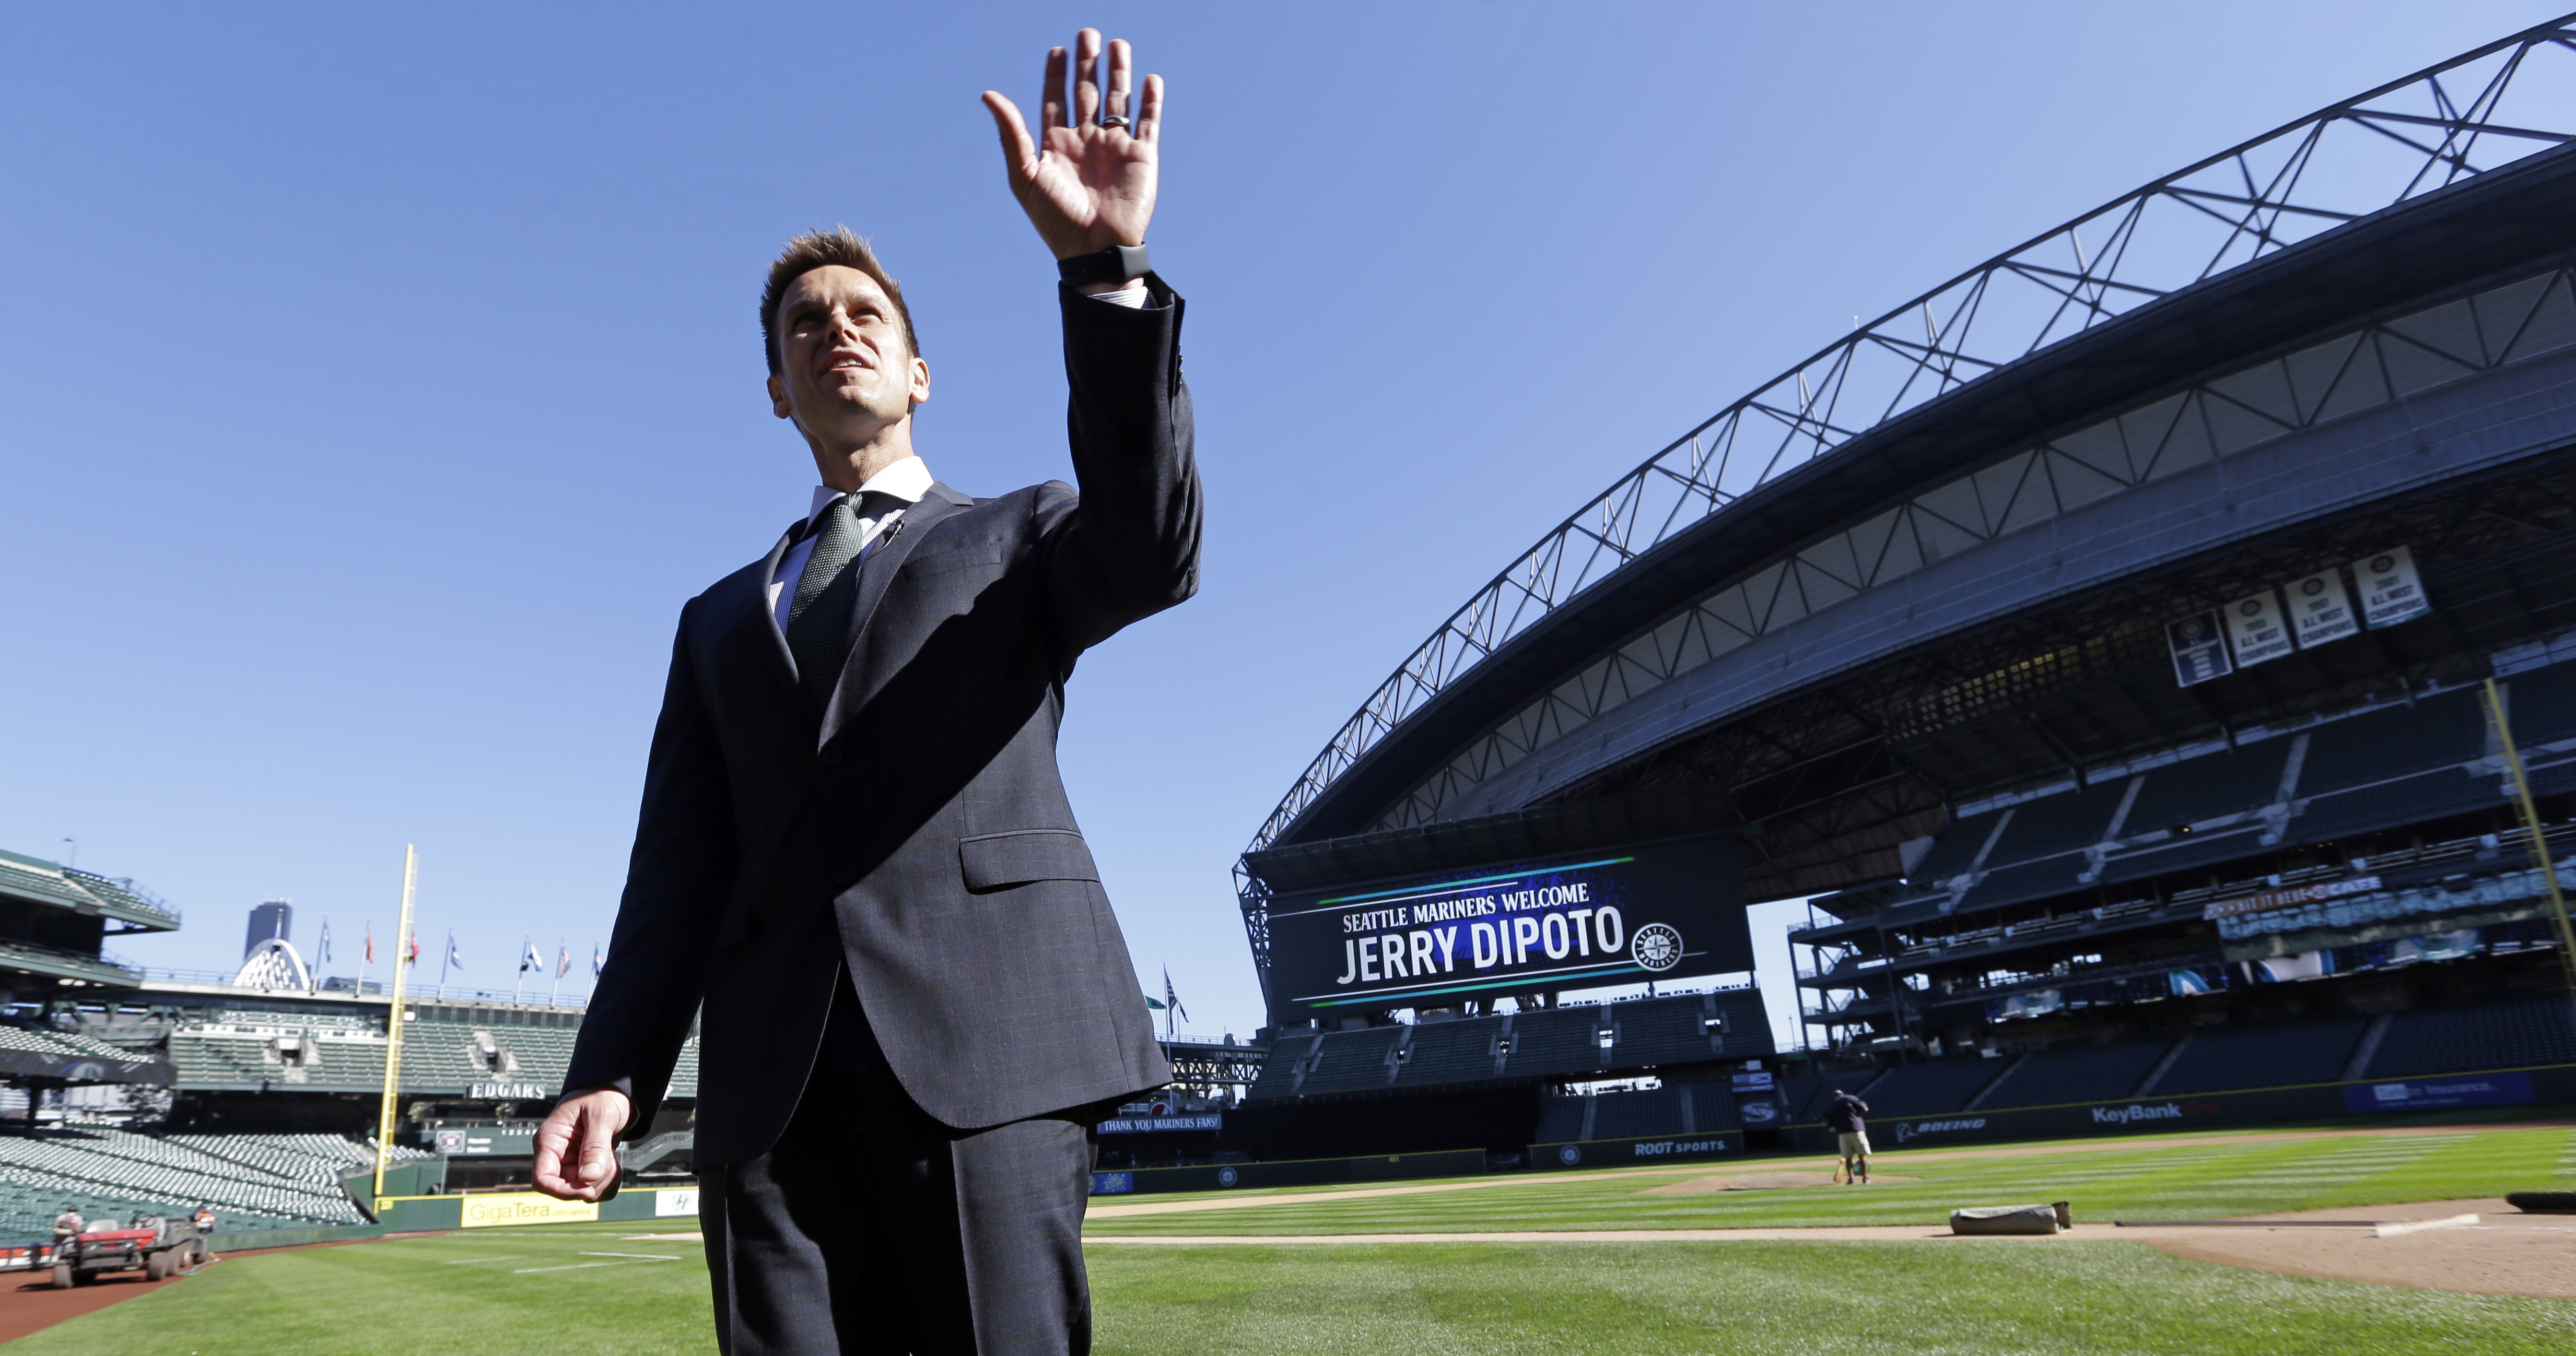 New Seattle Mariners general manager Jerry Dipoto motions toward the upper deck of the team's ballpark as he stands on the field after a news conference Tuesday, Sept. 29, 2015, in Seattle. For Dipoto, being hired by the Mariners as their new general mana